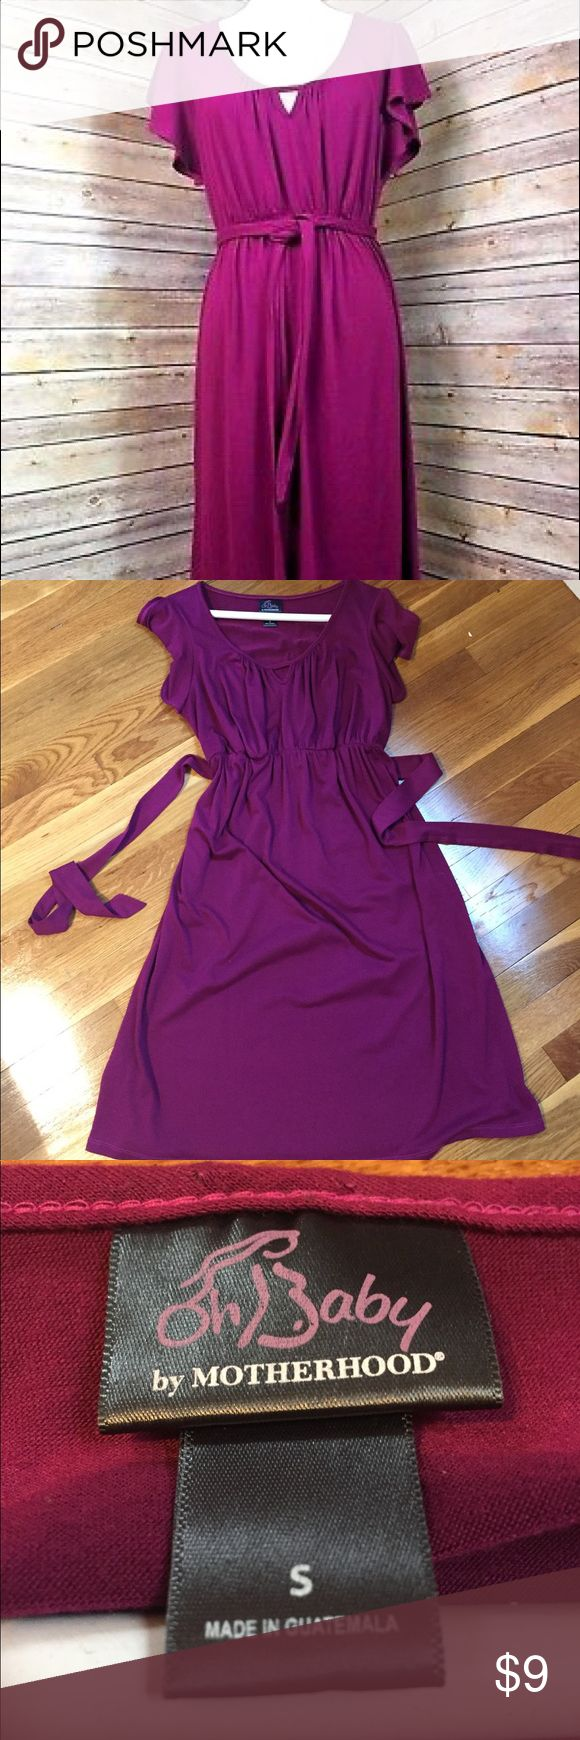 Purple maternity dress Oh baby by Motherhood purple maternity dress, perfect for work or casual. Size small. In good used condition, there is a small amount of pilling on parts of the dress but not noticeable from afar. Would definitely make a wonderful dress for spring & summer! From a smoke free and pet free home. Very soft dress, well loved! Oh Baby by Motherhood Dresses Midi